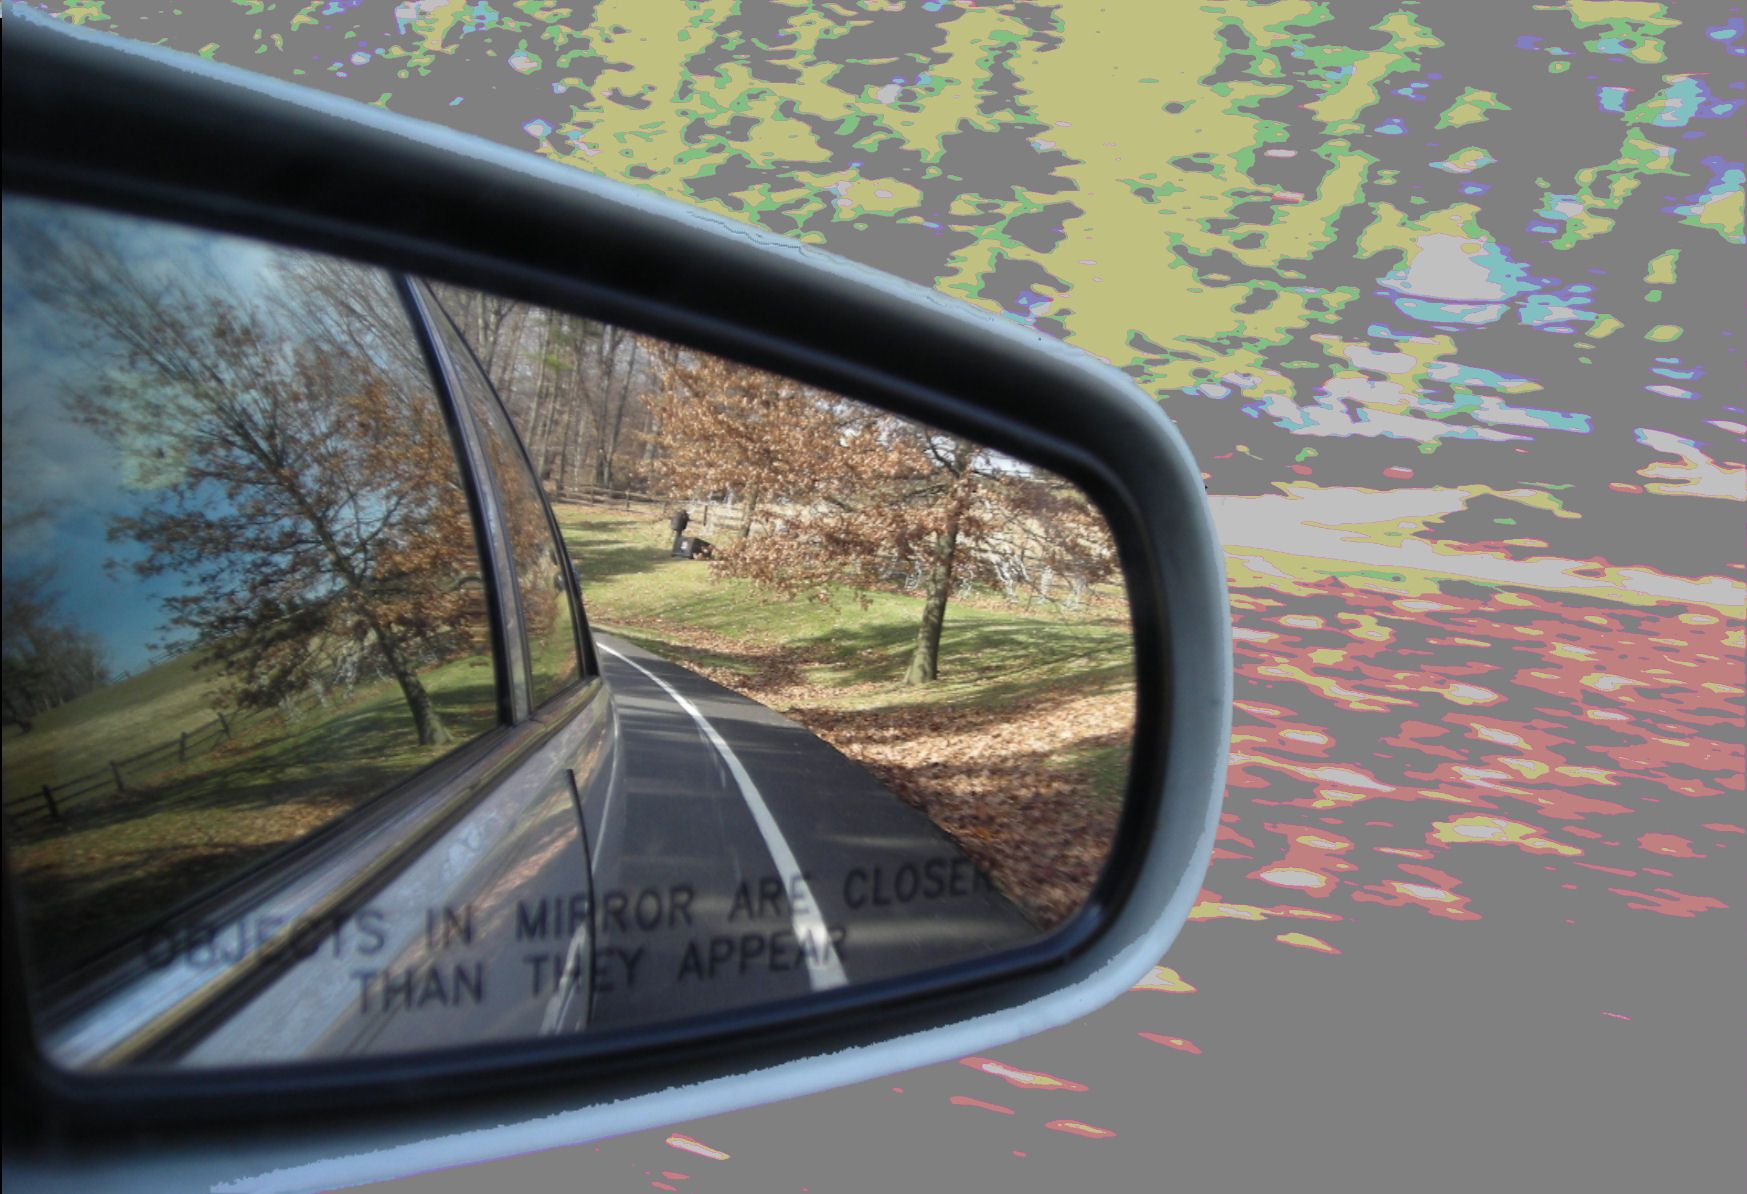 Objects in mirror are closer than they appear. | Mirror, Car mirror, Favorite places